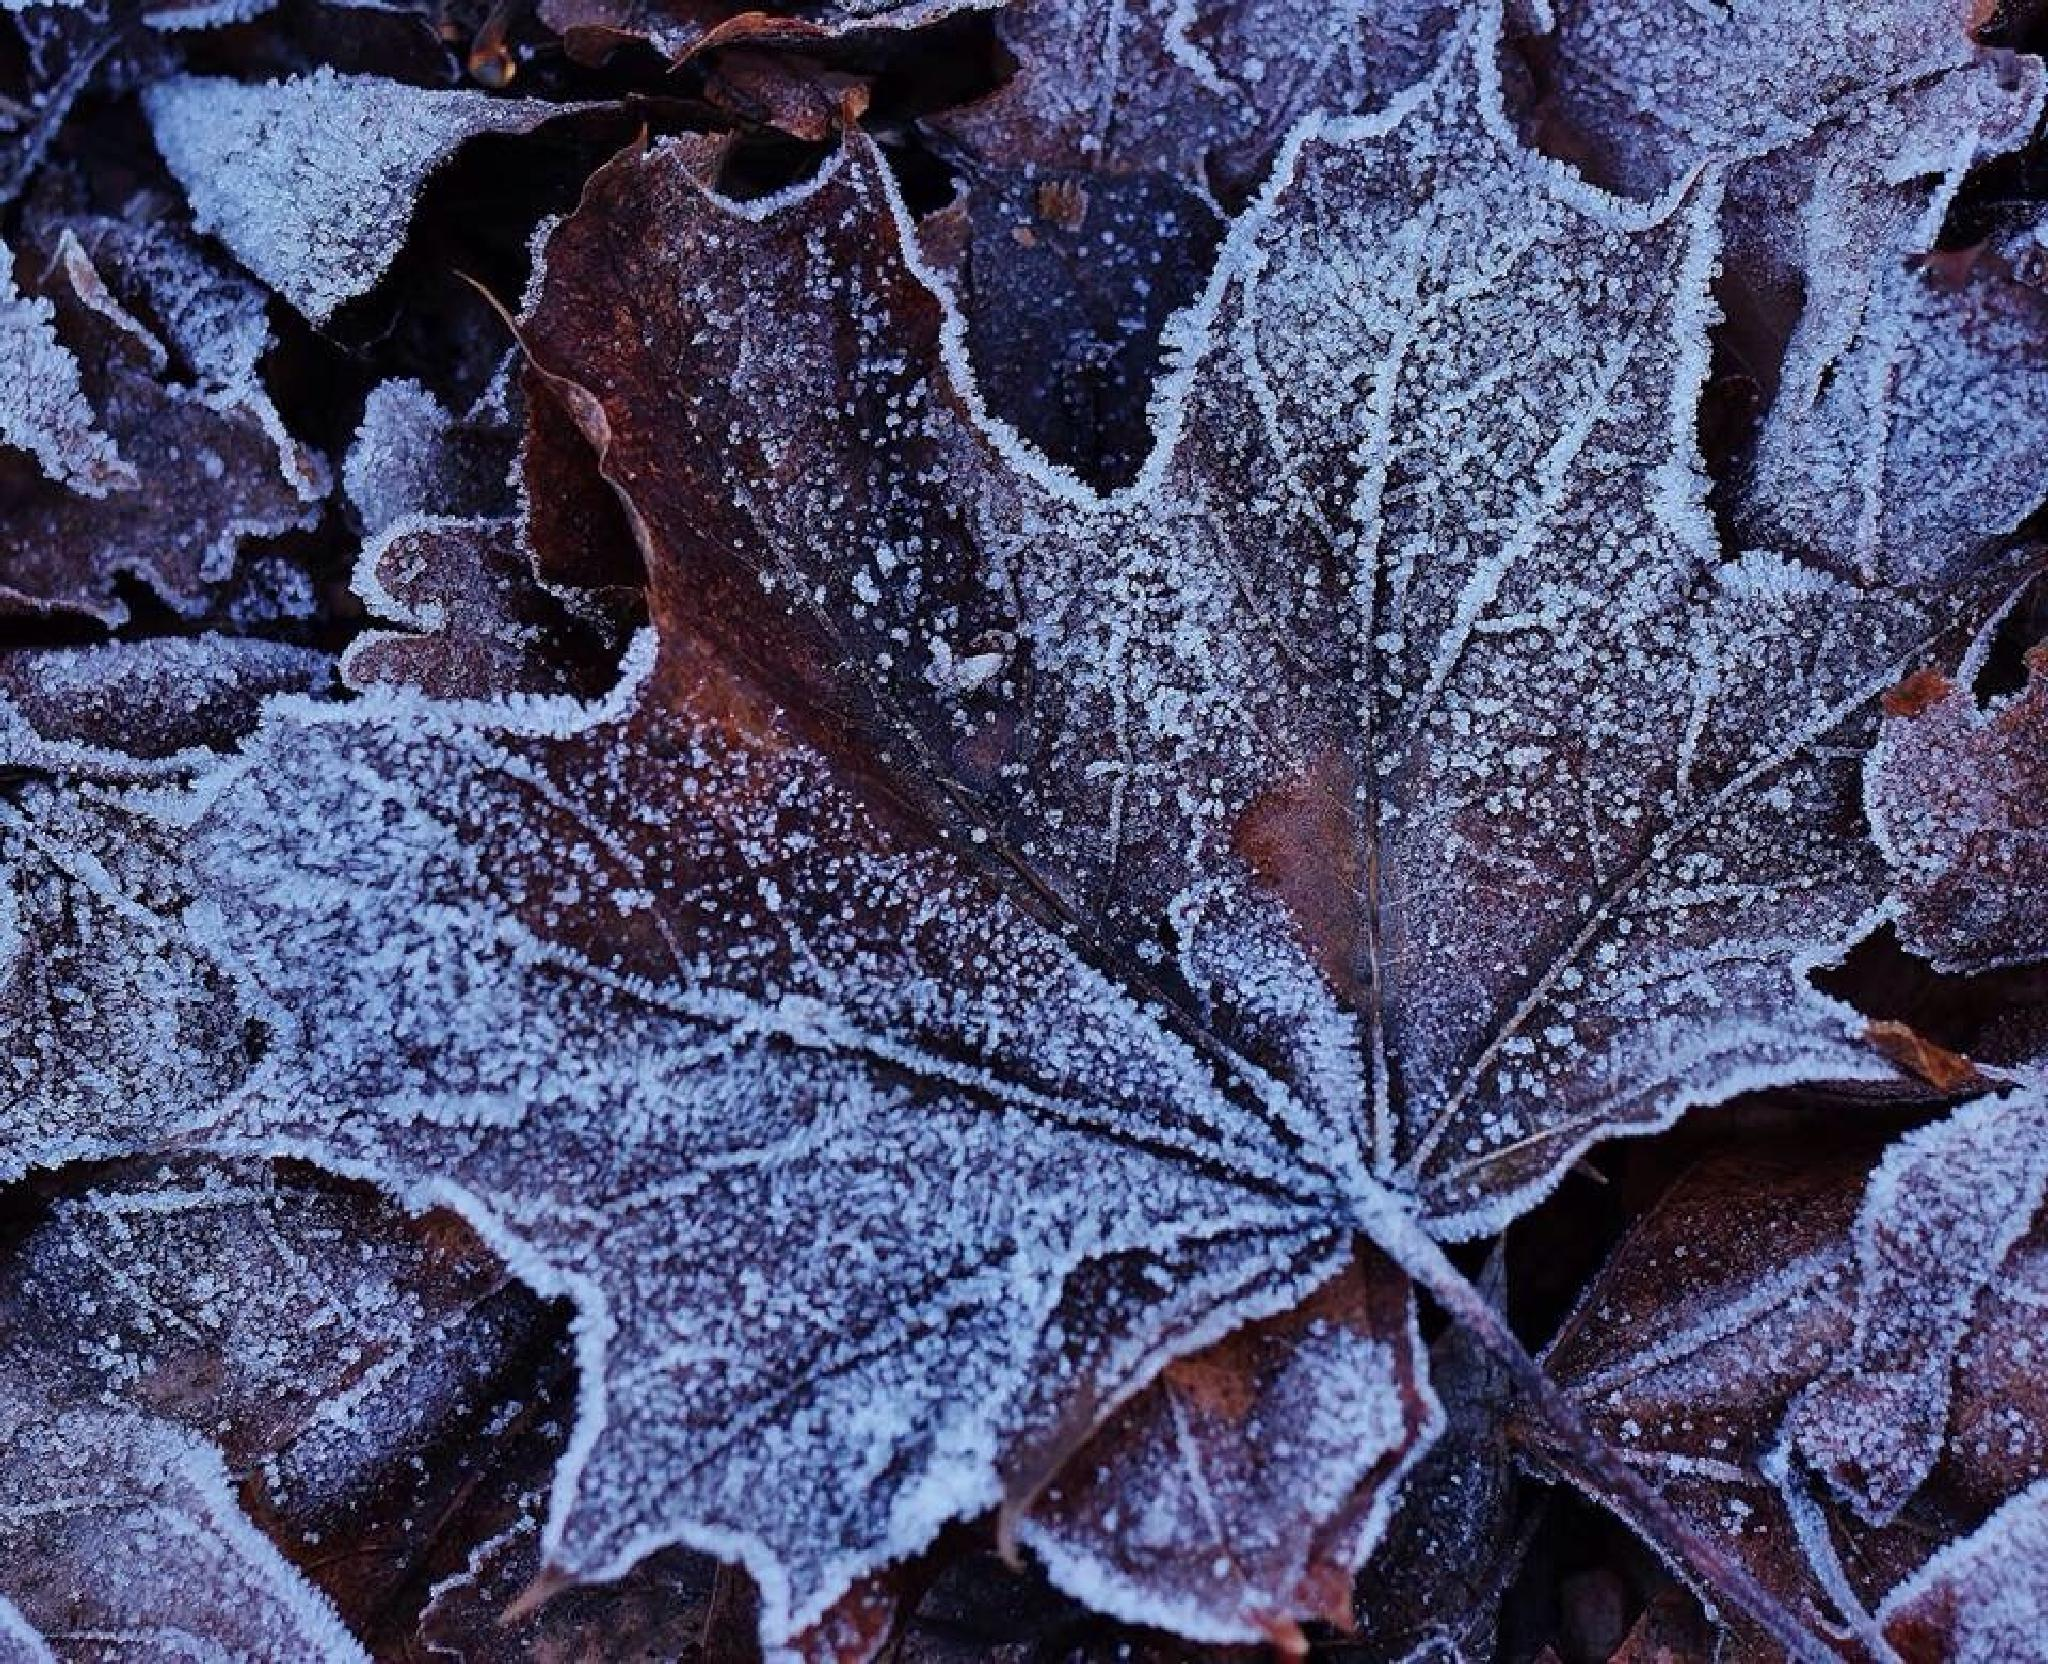 Frost 1 by james.newton.3344